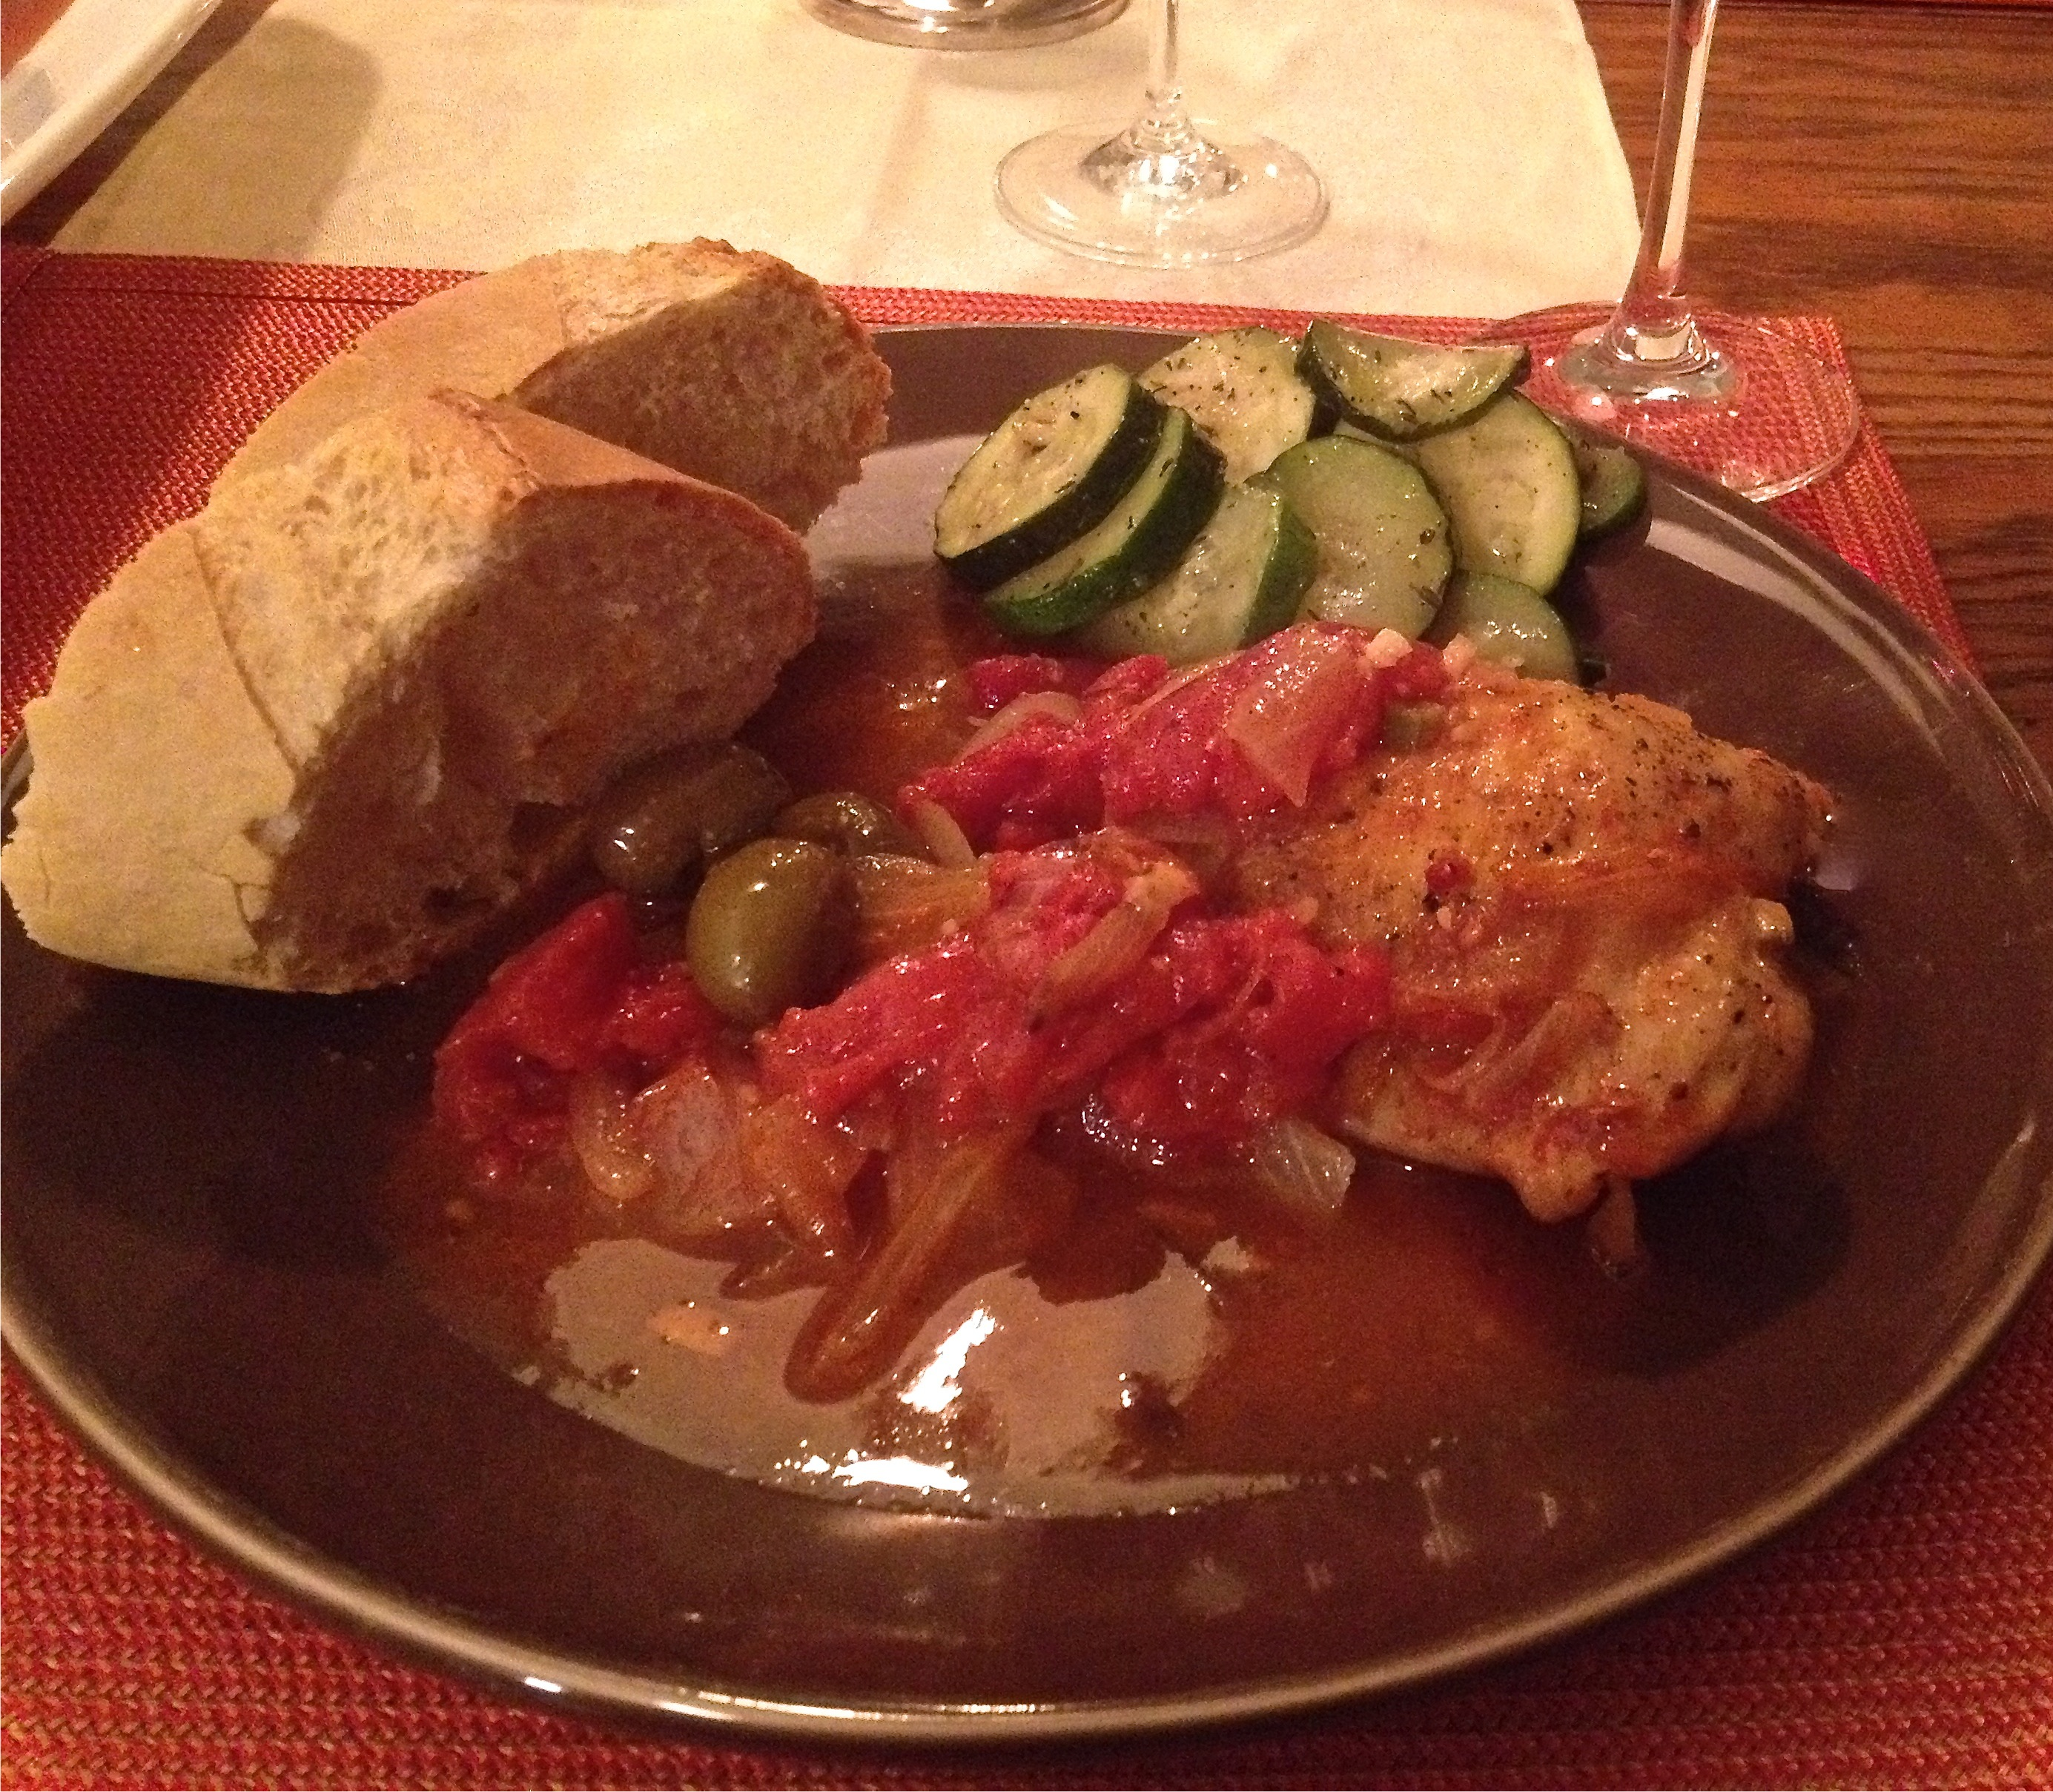 Braised chicken legs with tomatoes, onions, garlic, and olives on slices of a French baguette and roasted zucchini on a brown pottery plate.